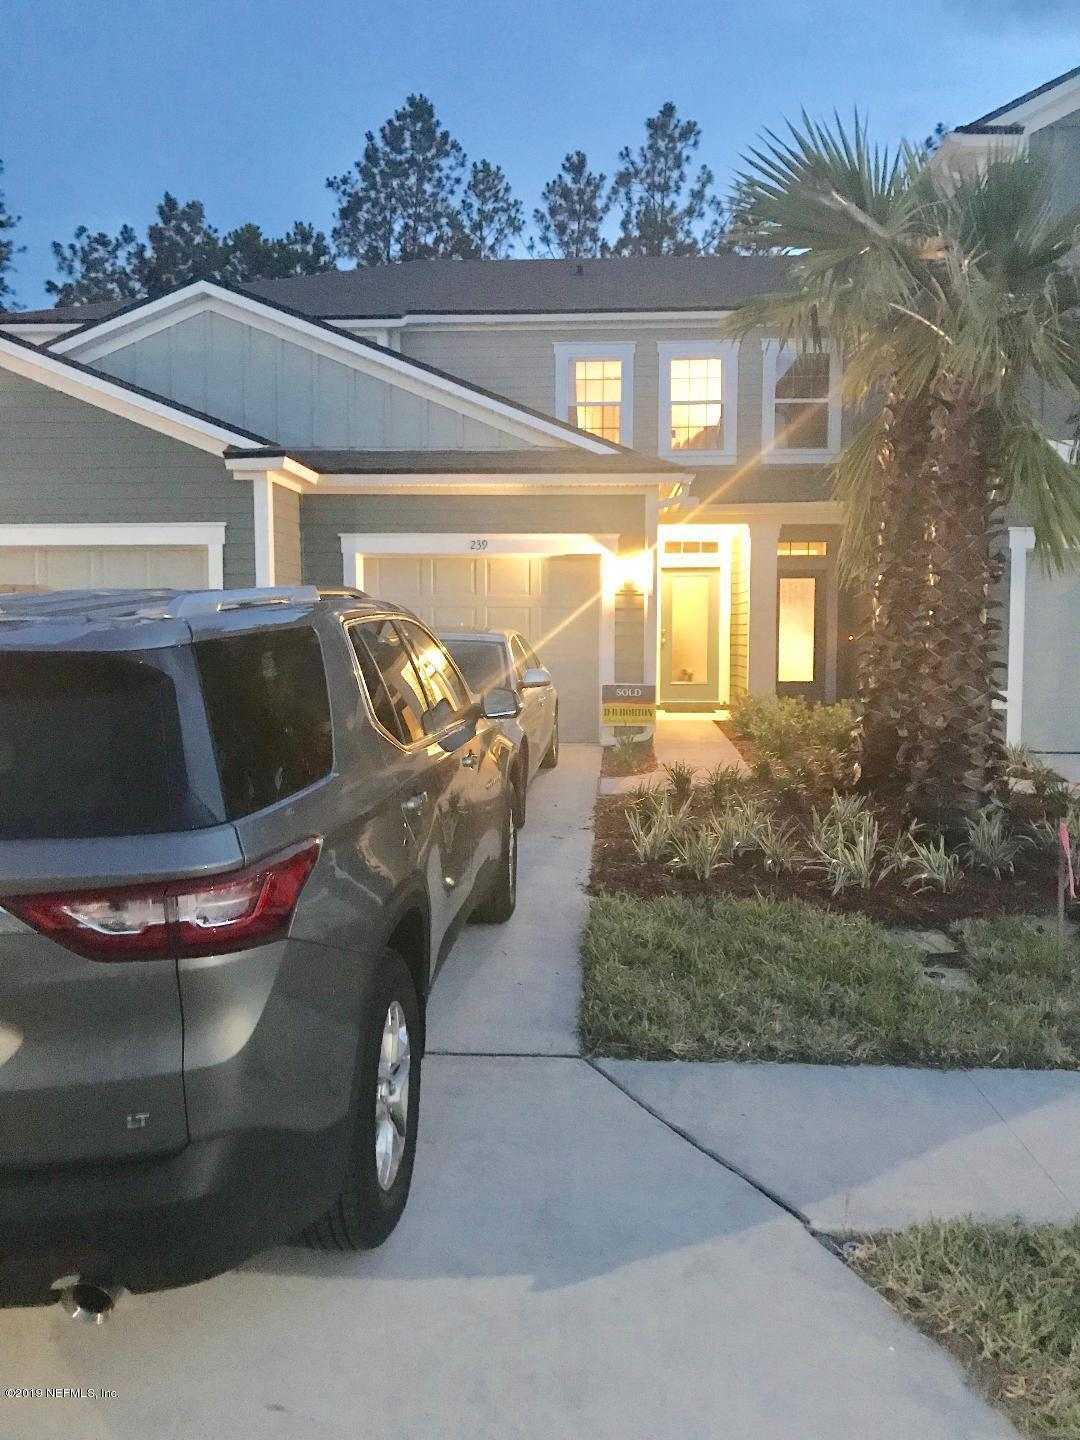 Photo of 239 SERVIA, ST JOHNS, FL 32259